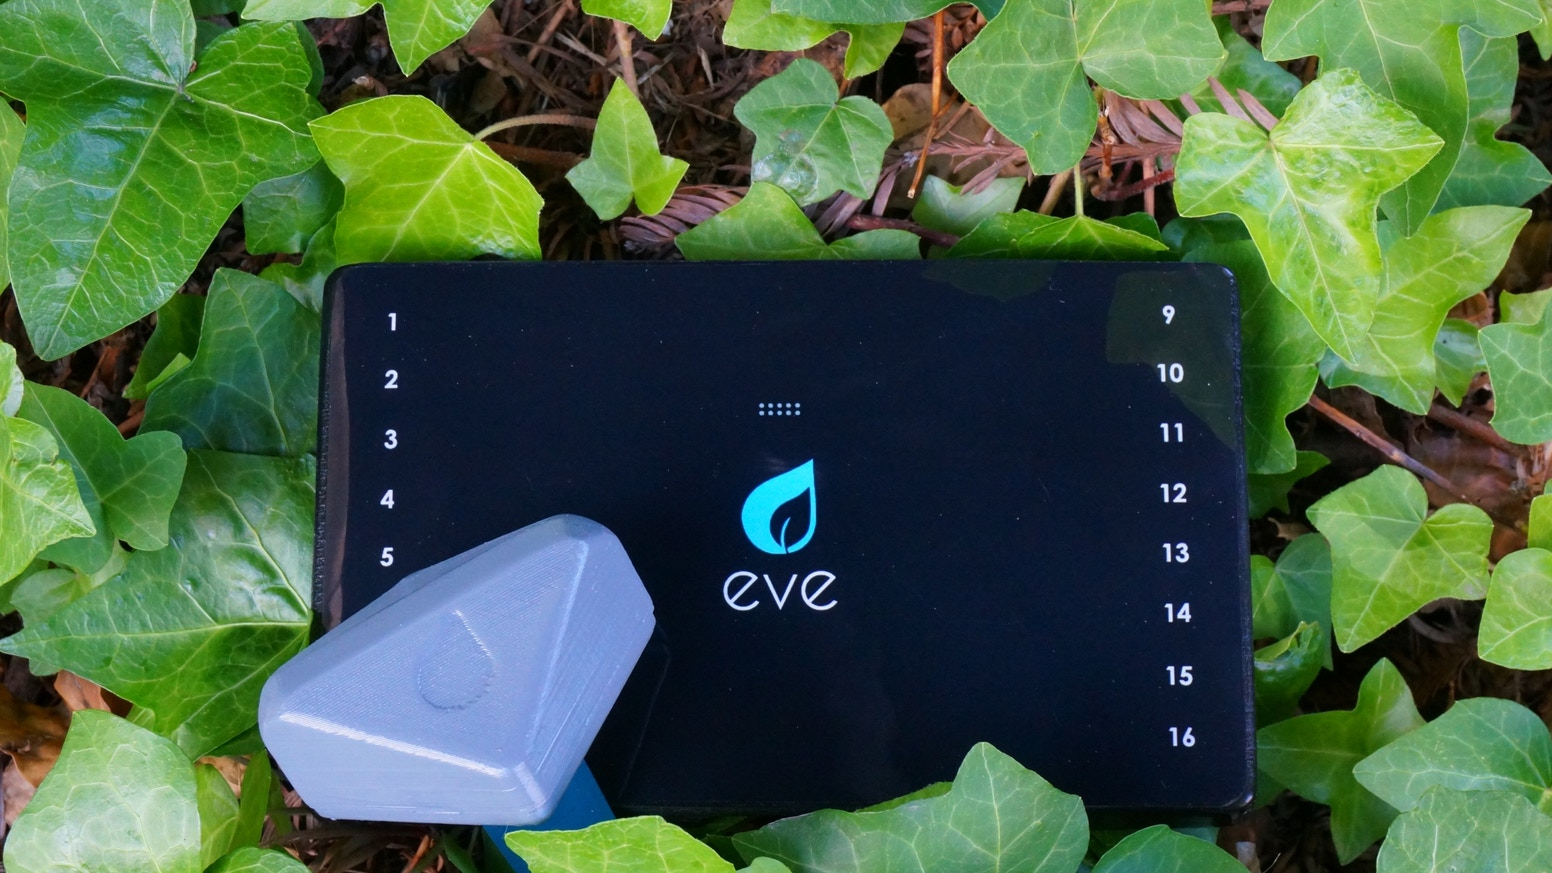 Eve is now Spruce! The next evolution in home irrigation. Spruce takes your smart yard to the next level with moisture sensor feedback for ultimate control.